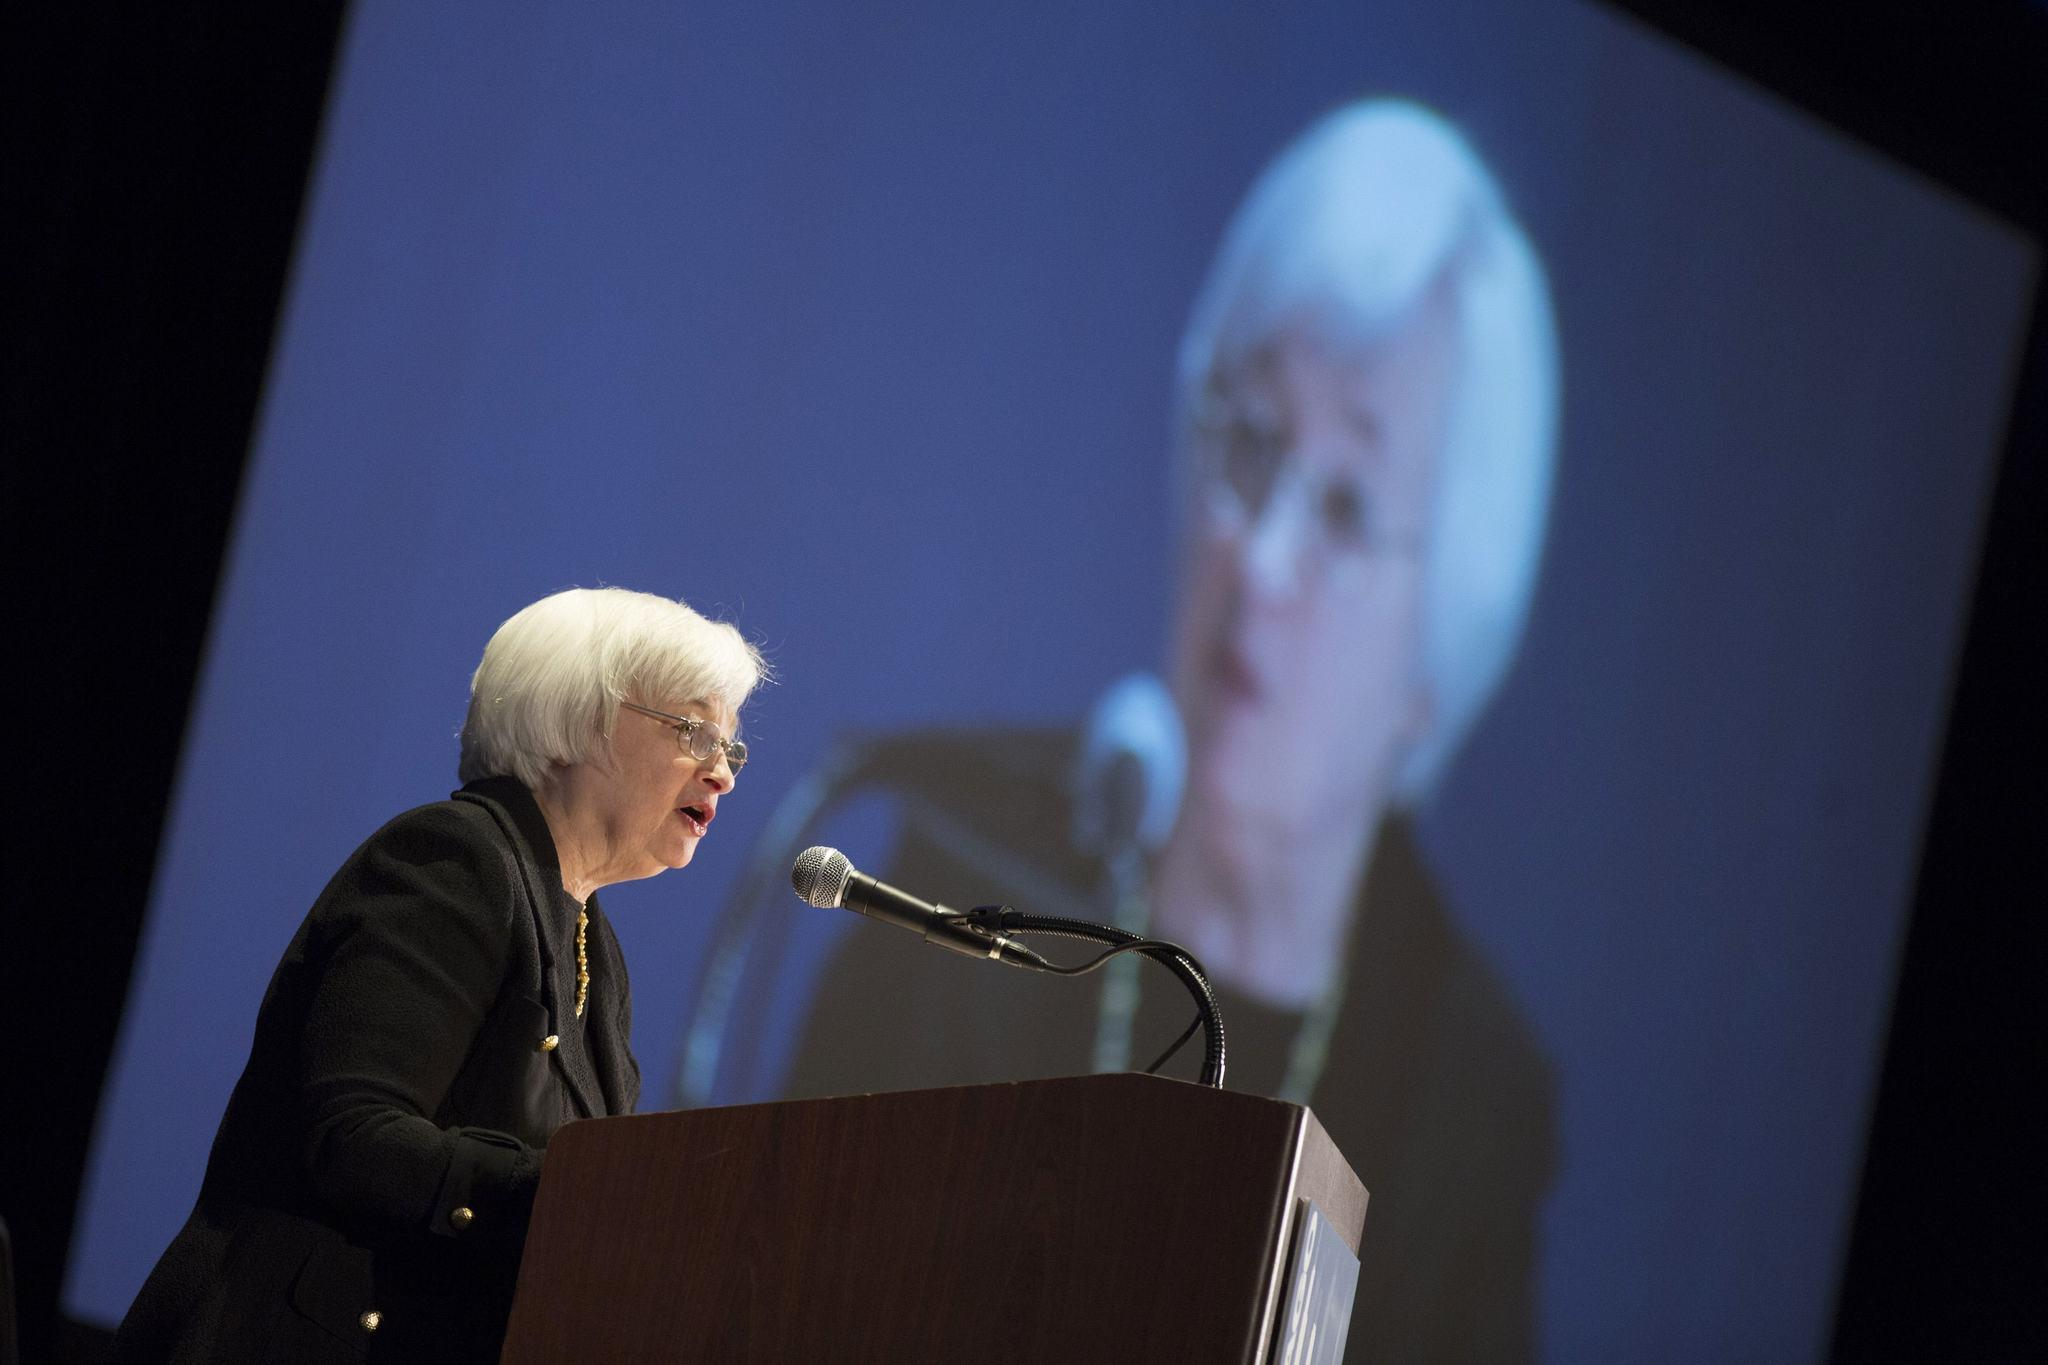 Federal Reserve Chair Janet Yellen speaks at the 2014 National Interagency Community Reinvestment Conference in Chicago, March 31, 2014.